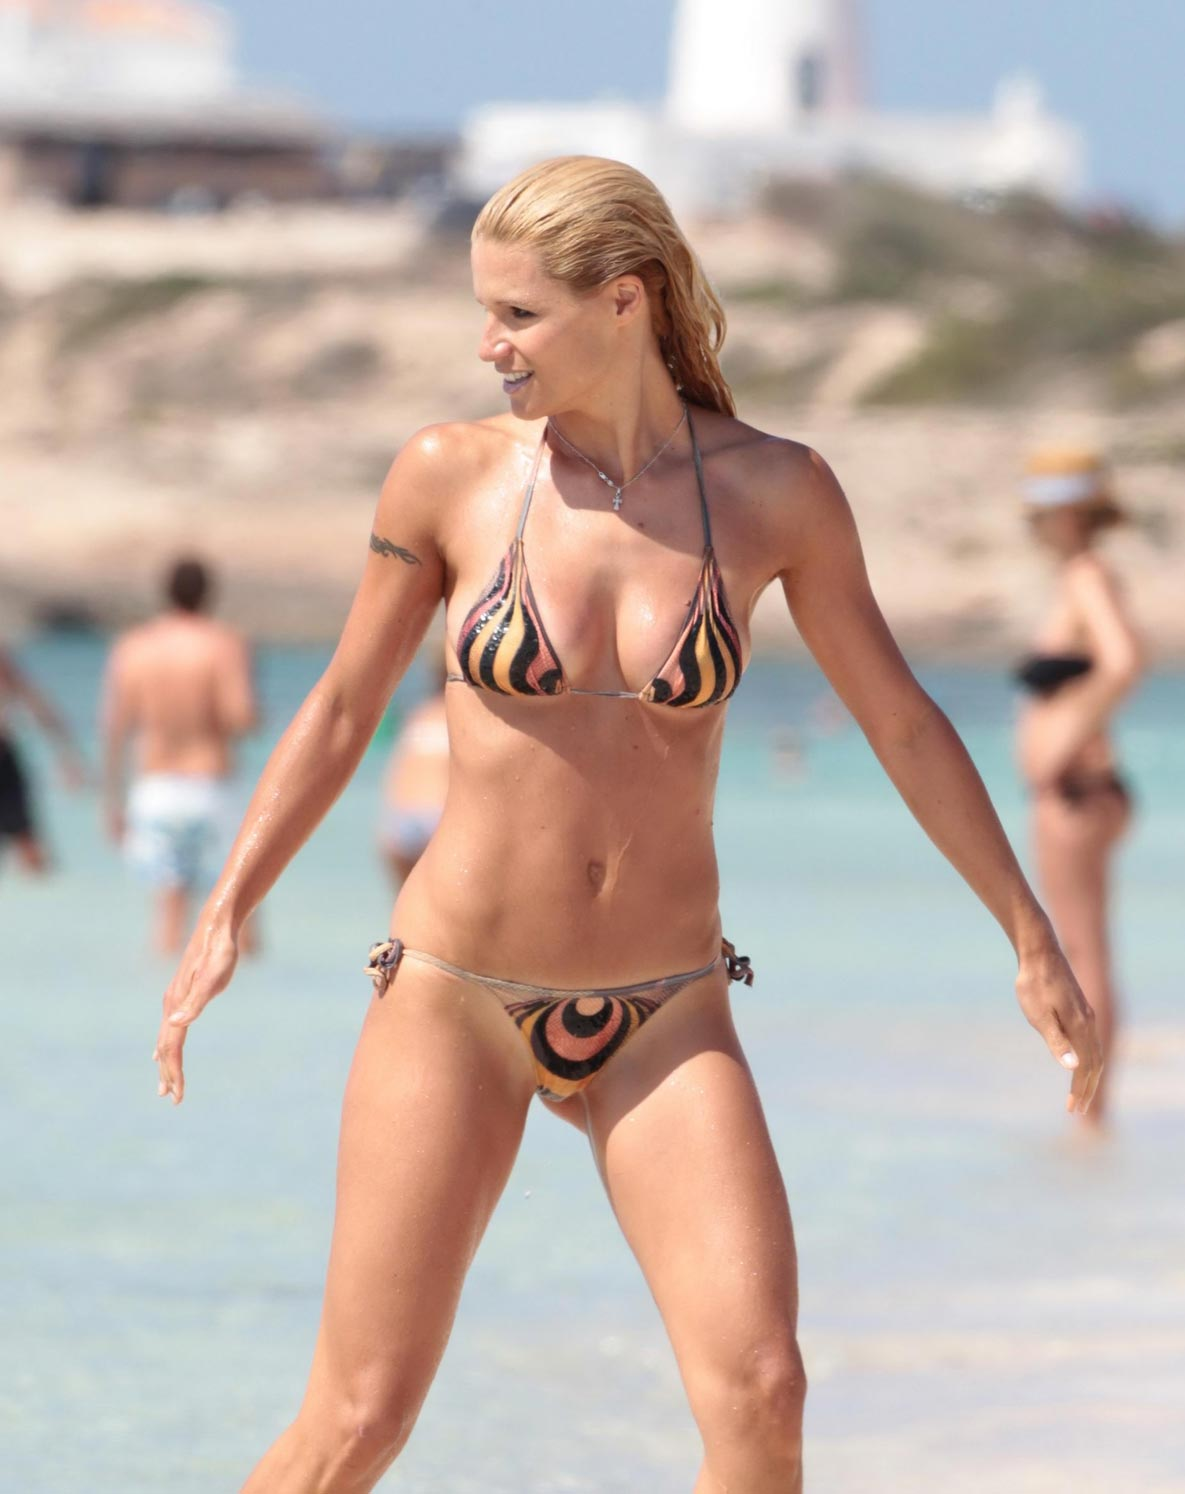 The same. michelle hunziker bikini good words